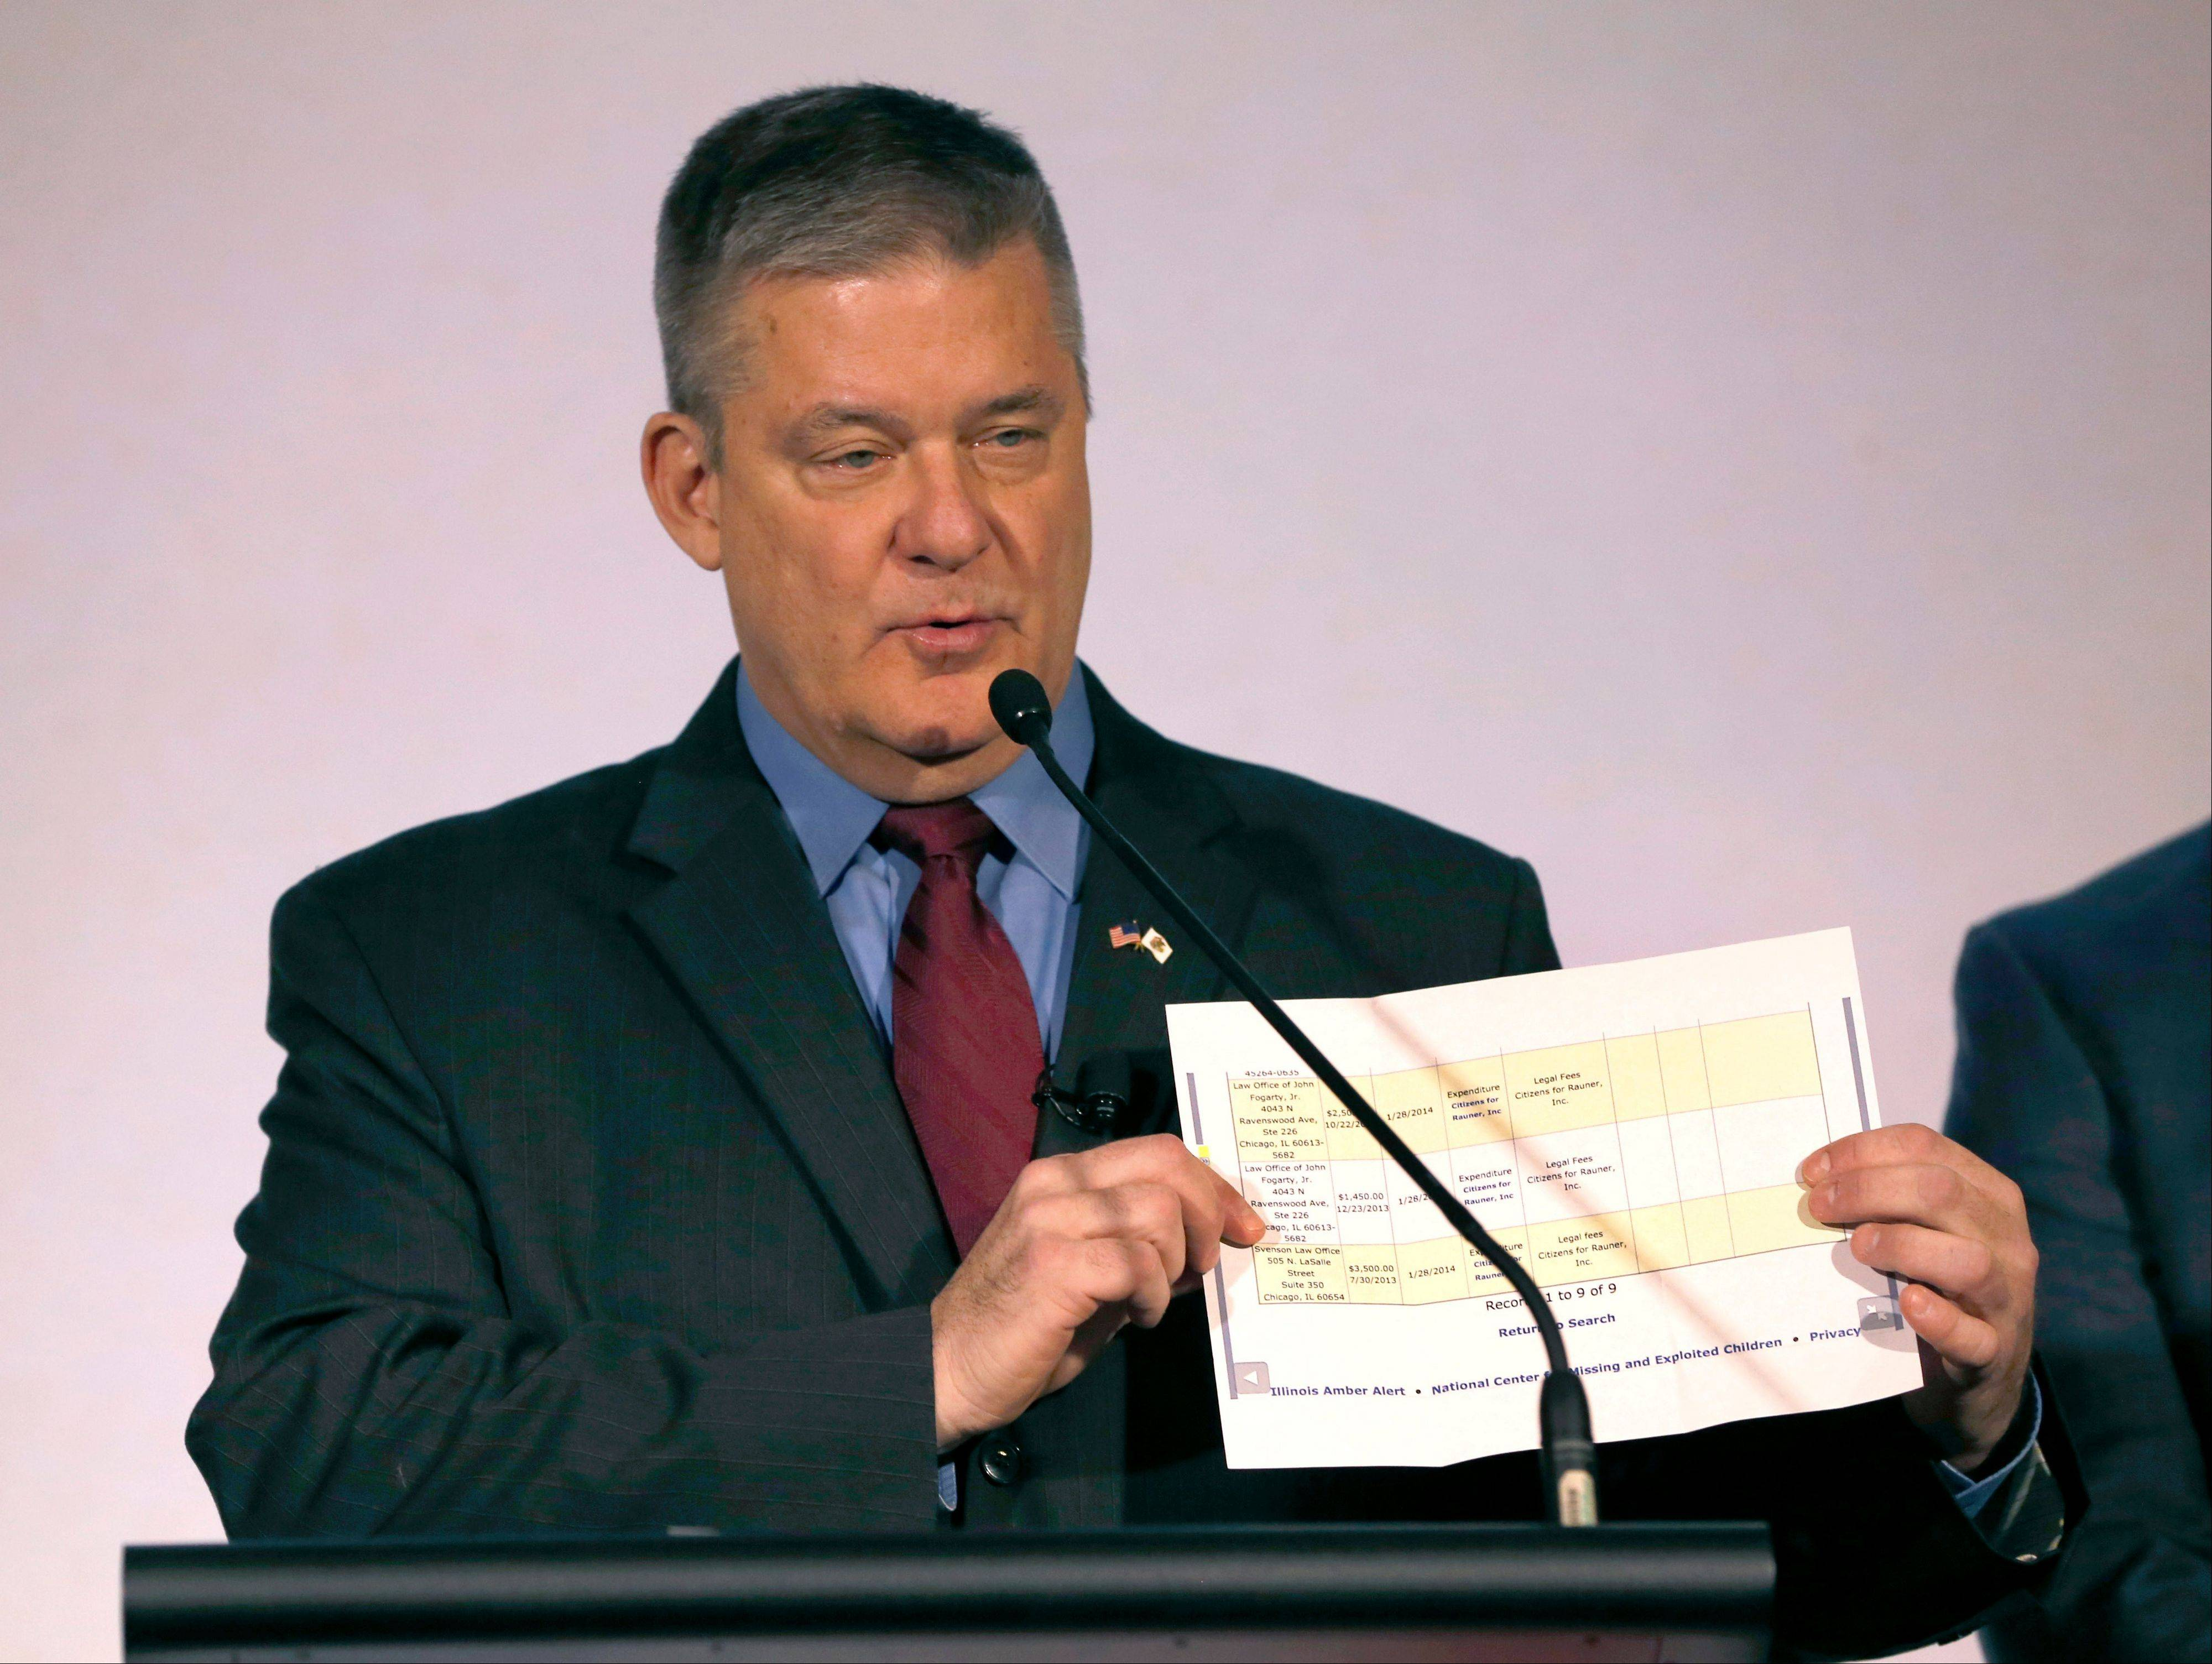 Illinois Treasurer and Republican candidate for governor Dan Rutherford holds up a copy of gubernatorial candidate Bruce Rauner's recent campaign finance report Friday after announcing his office is investigating allegations against him made by an employee he suspects was put up to it by Rauner.